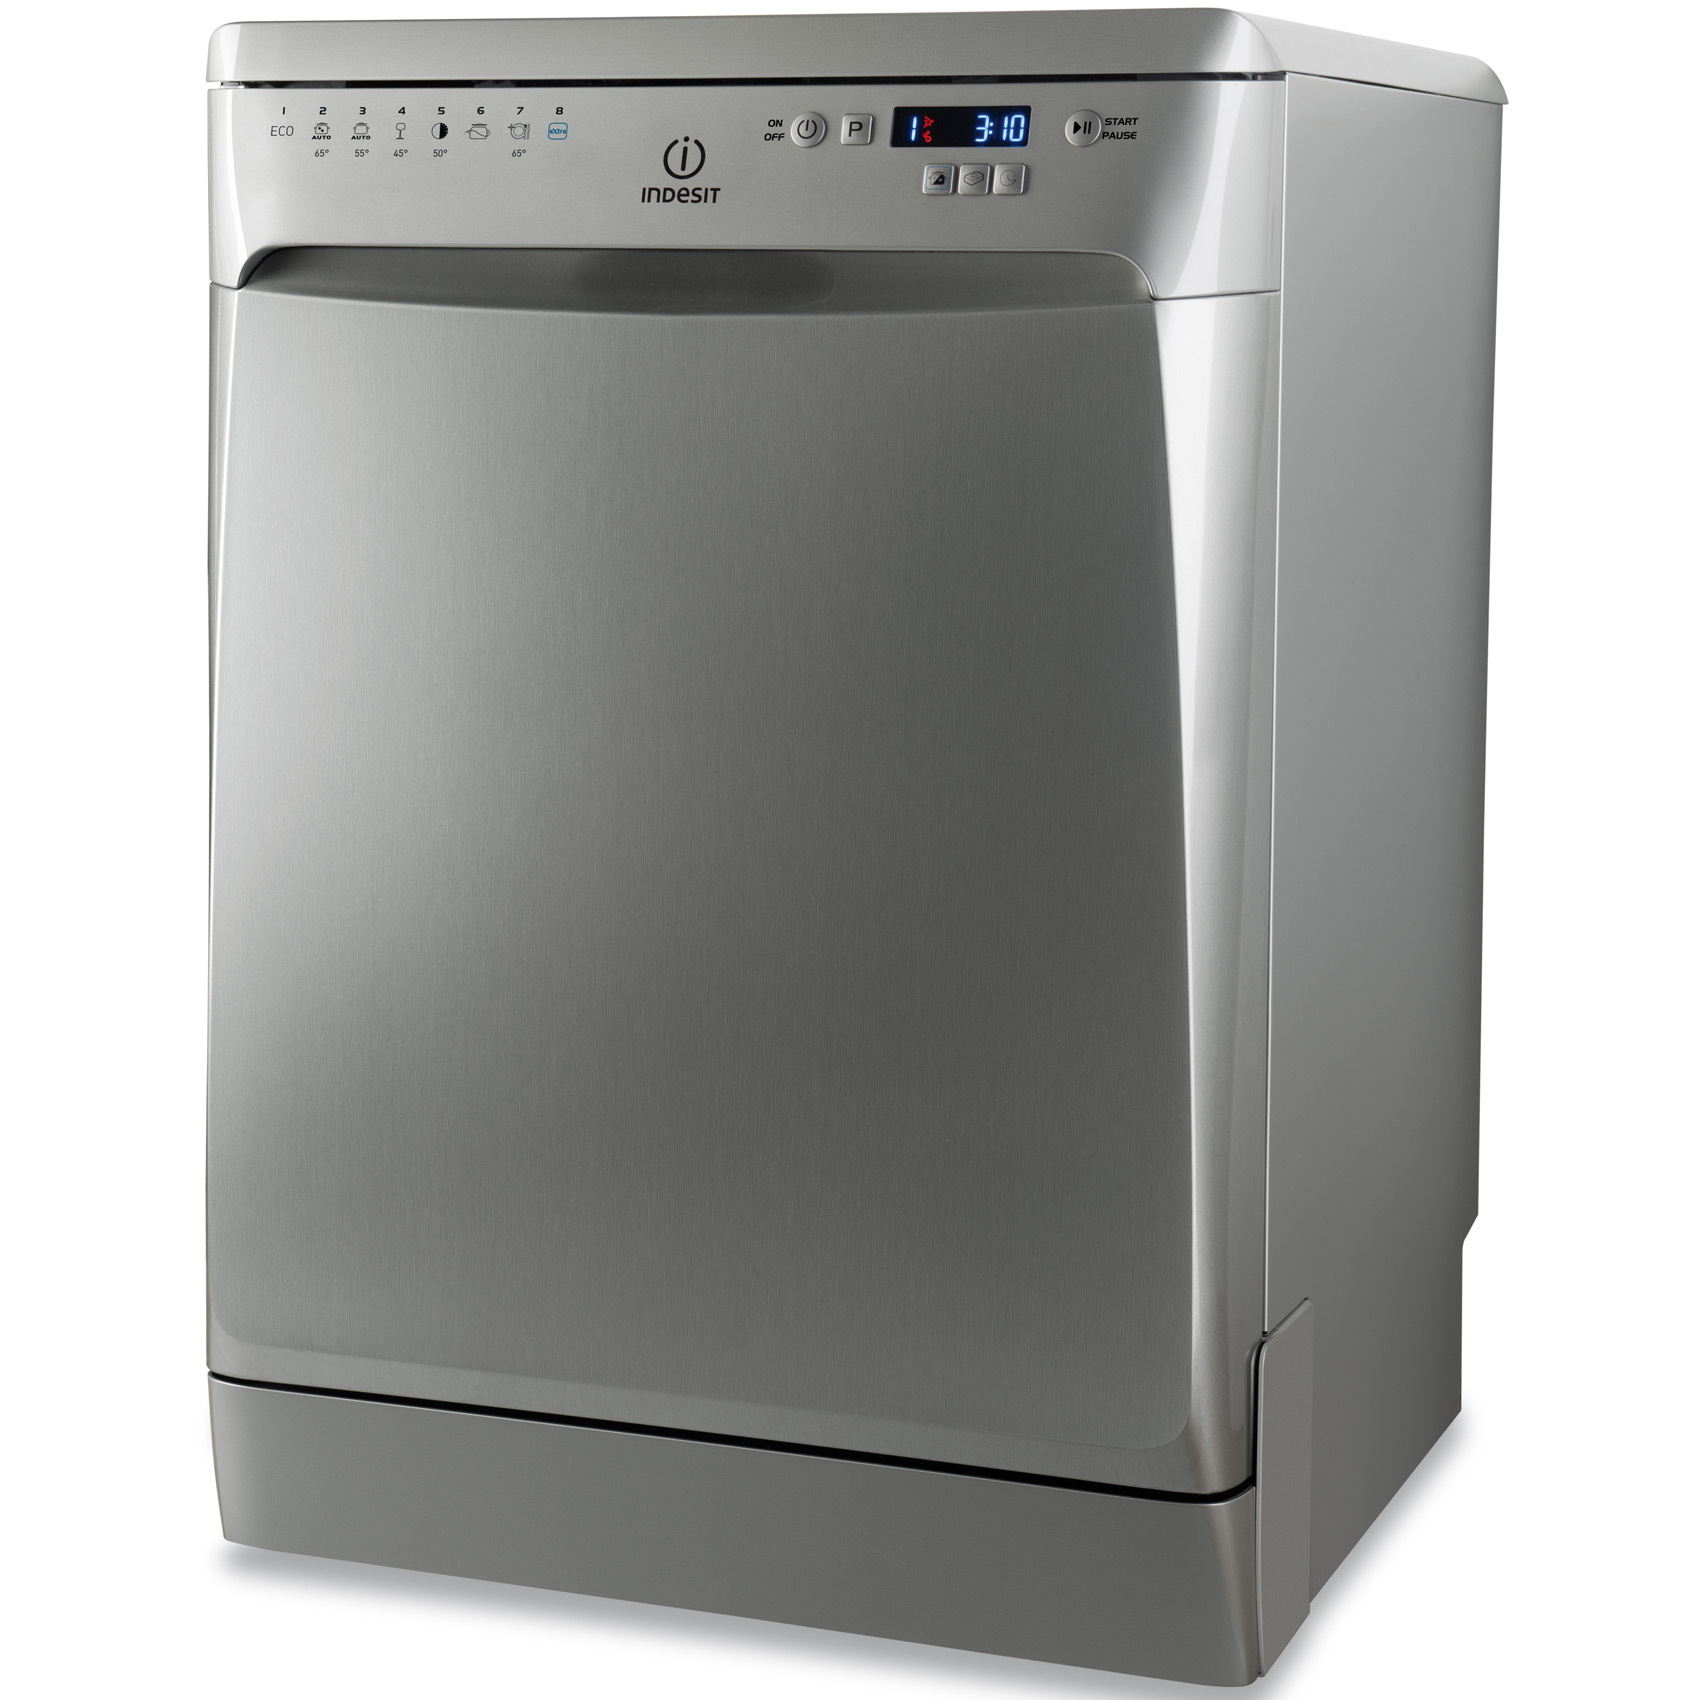 INDESIT DISH WASHER DFP58T1NXUKEX